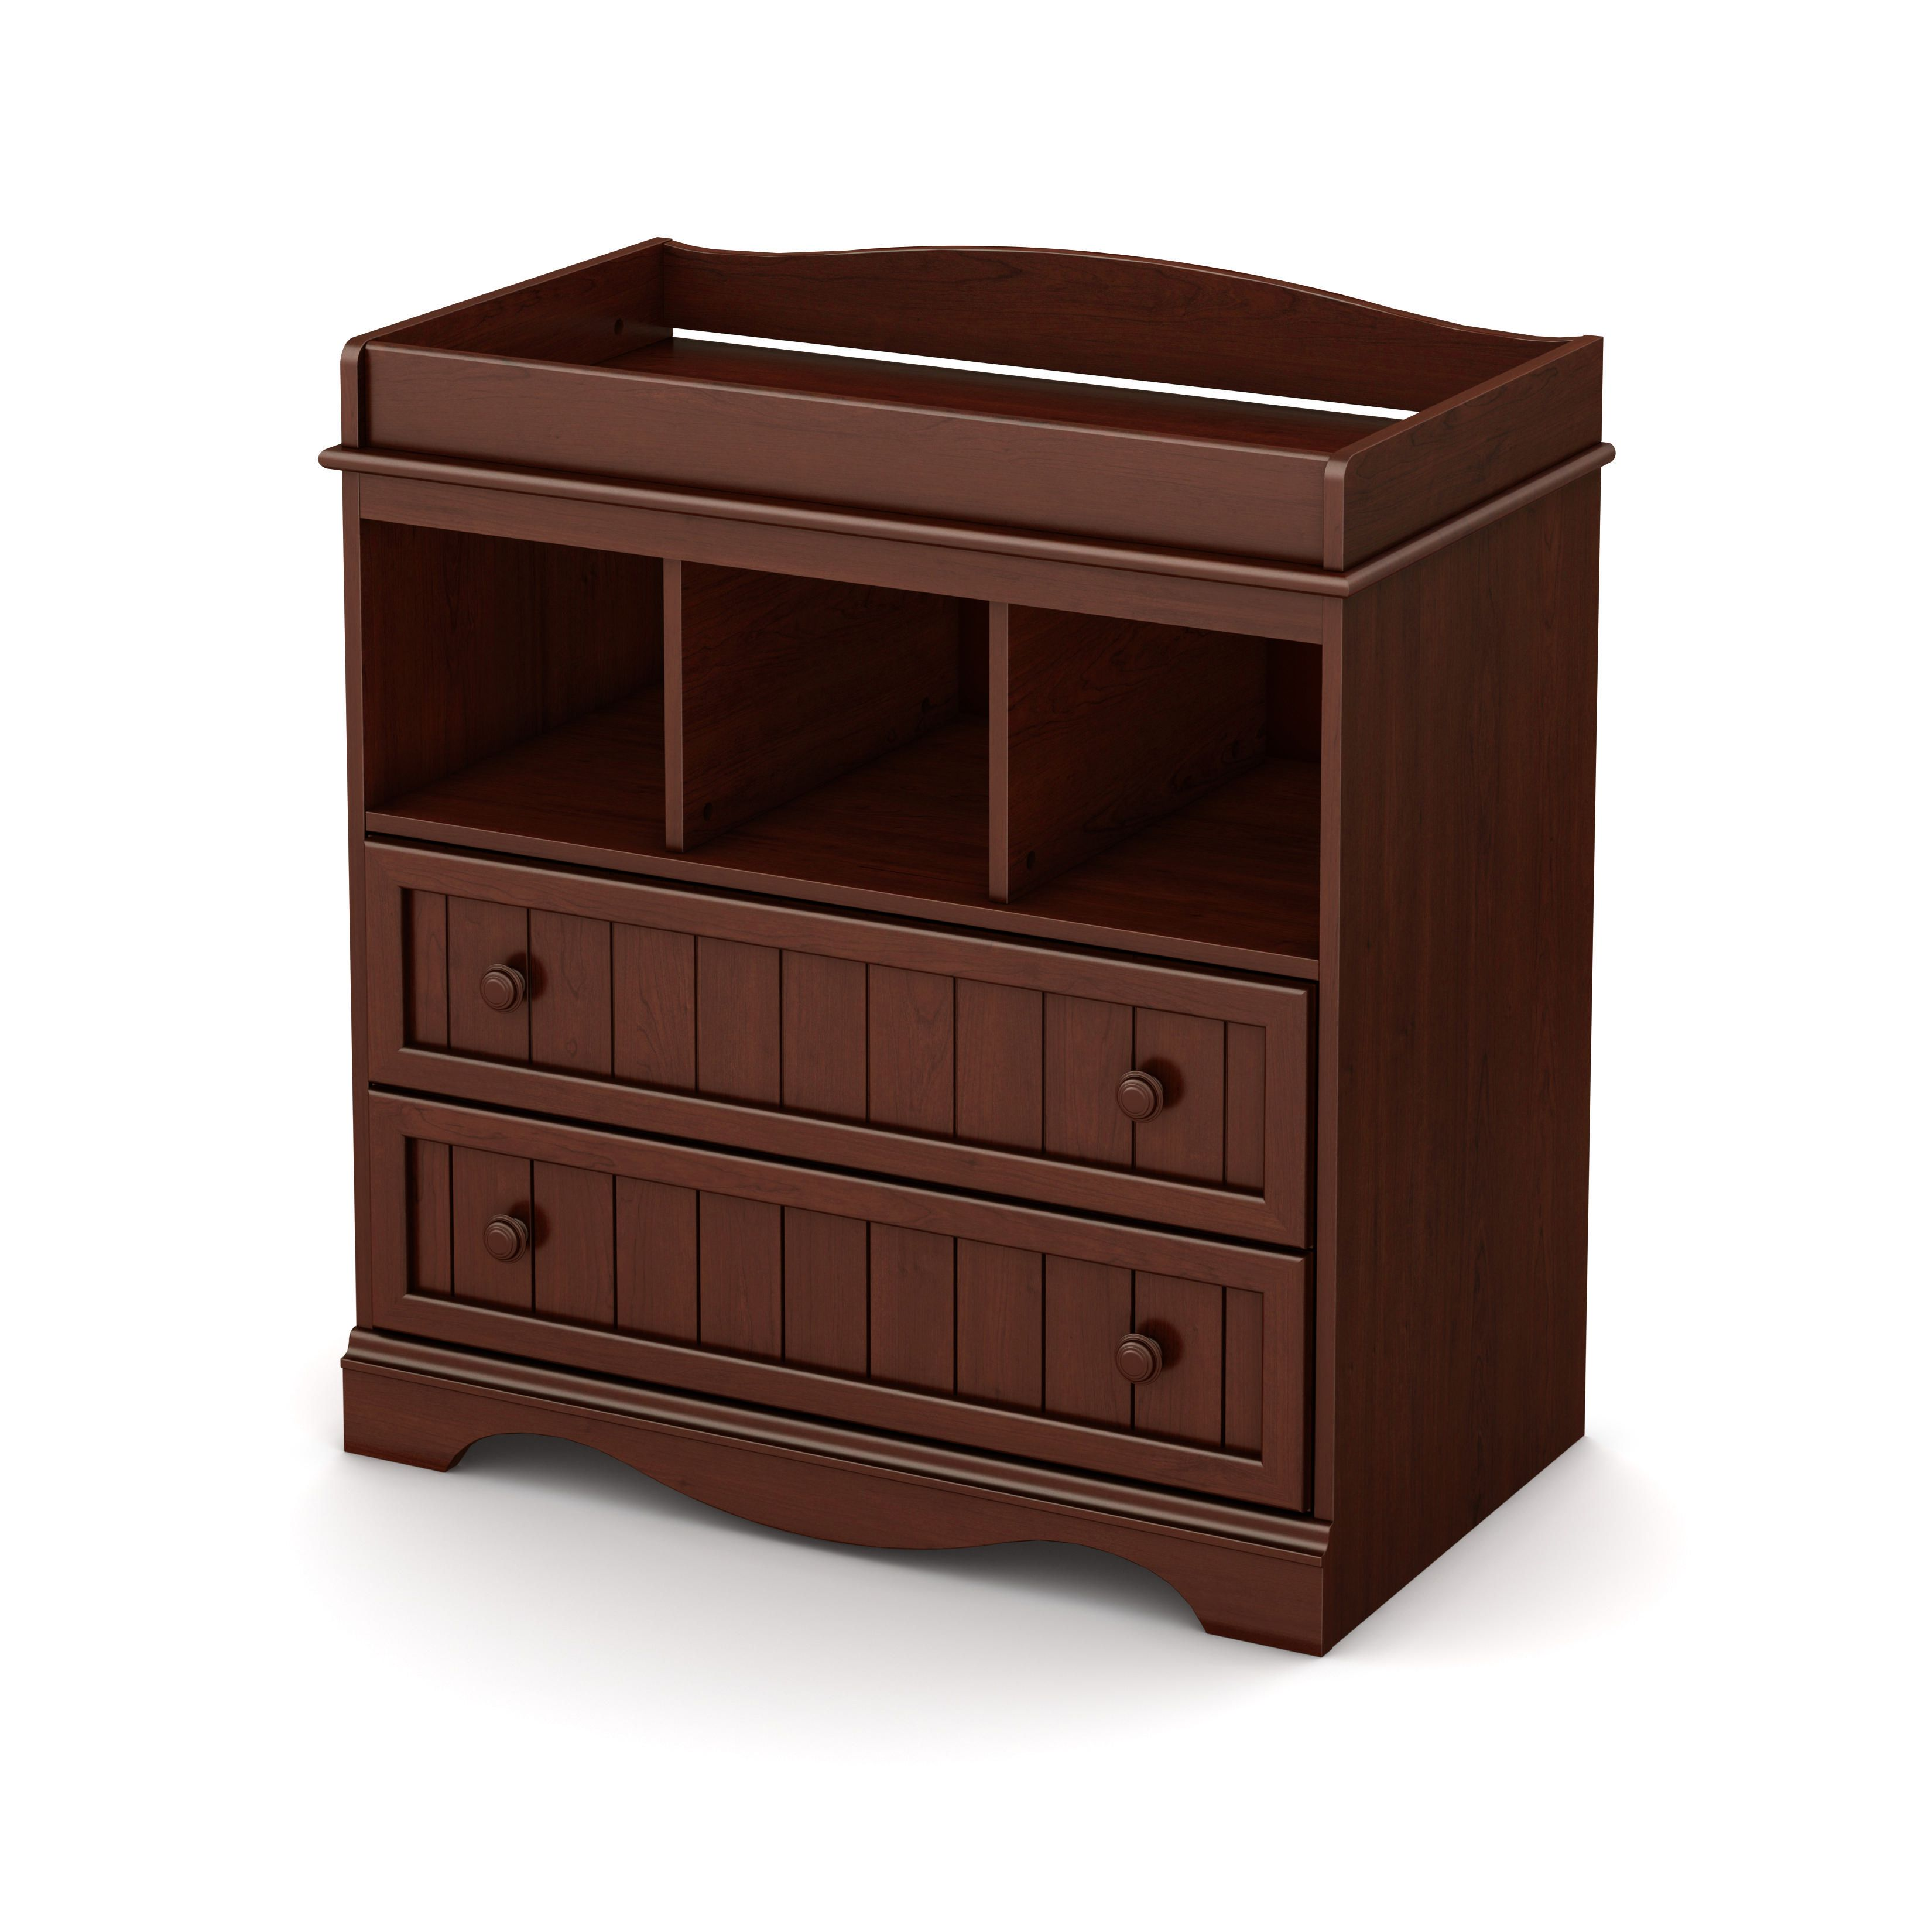 buy changing tables online  walmart canada - south shore savannah collection changing table